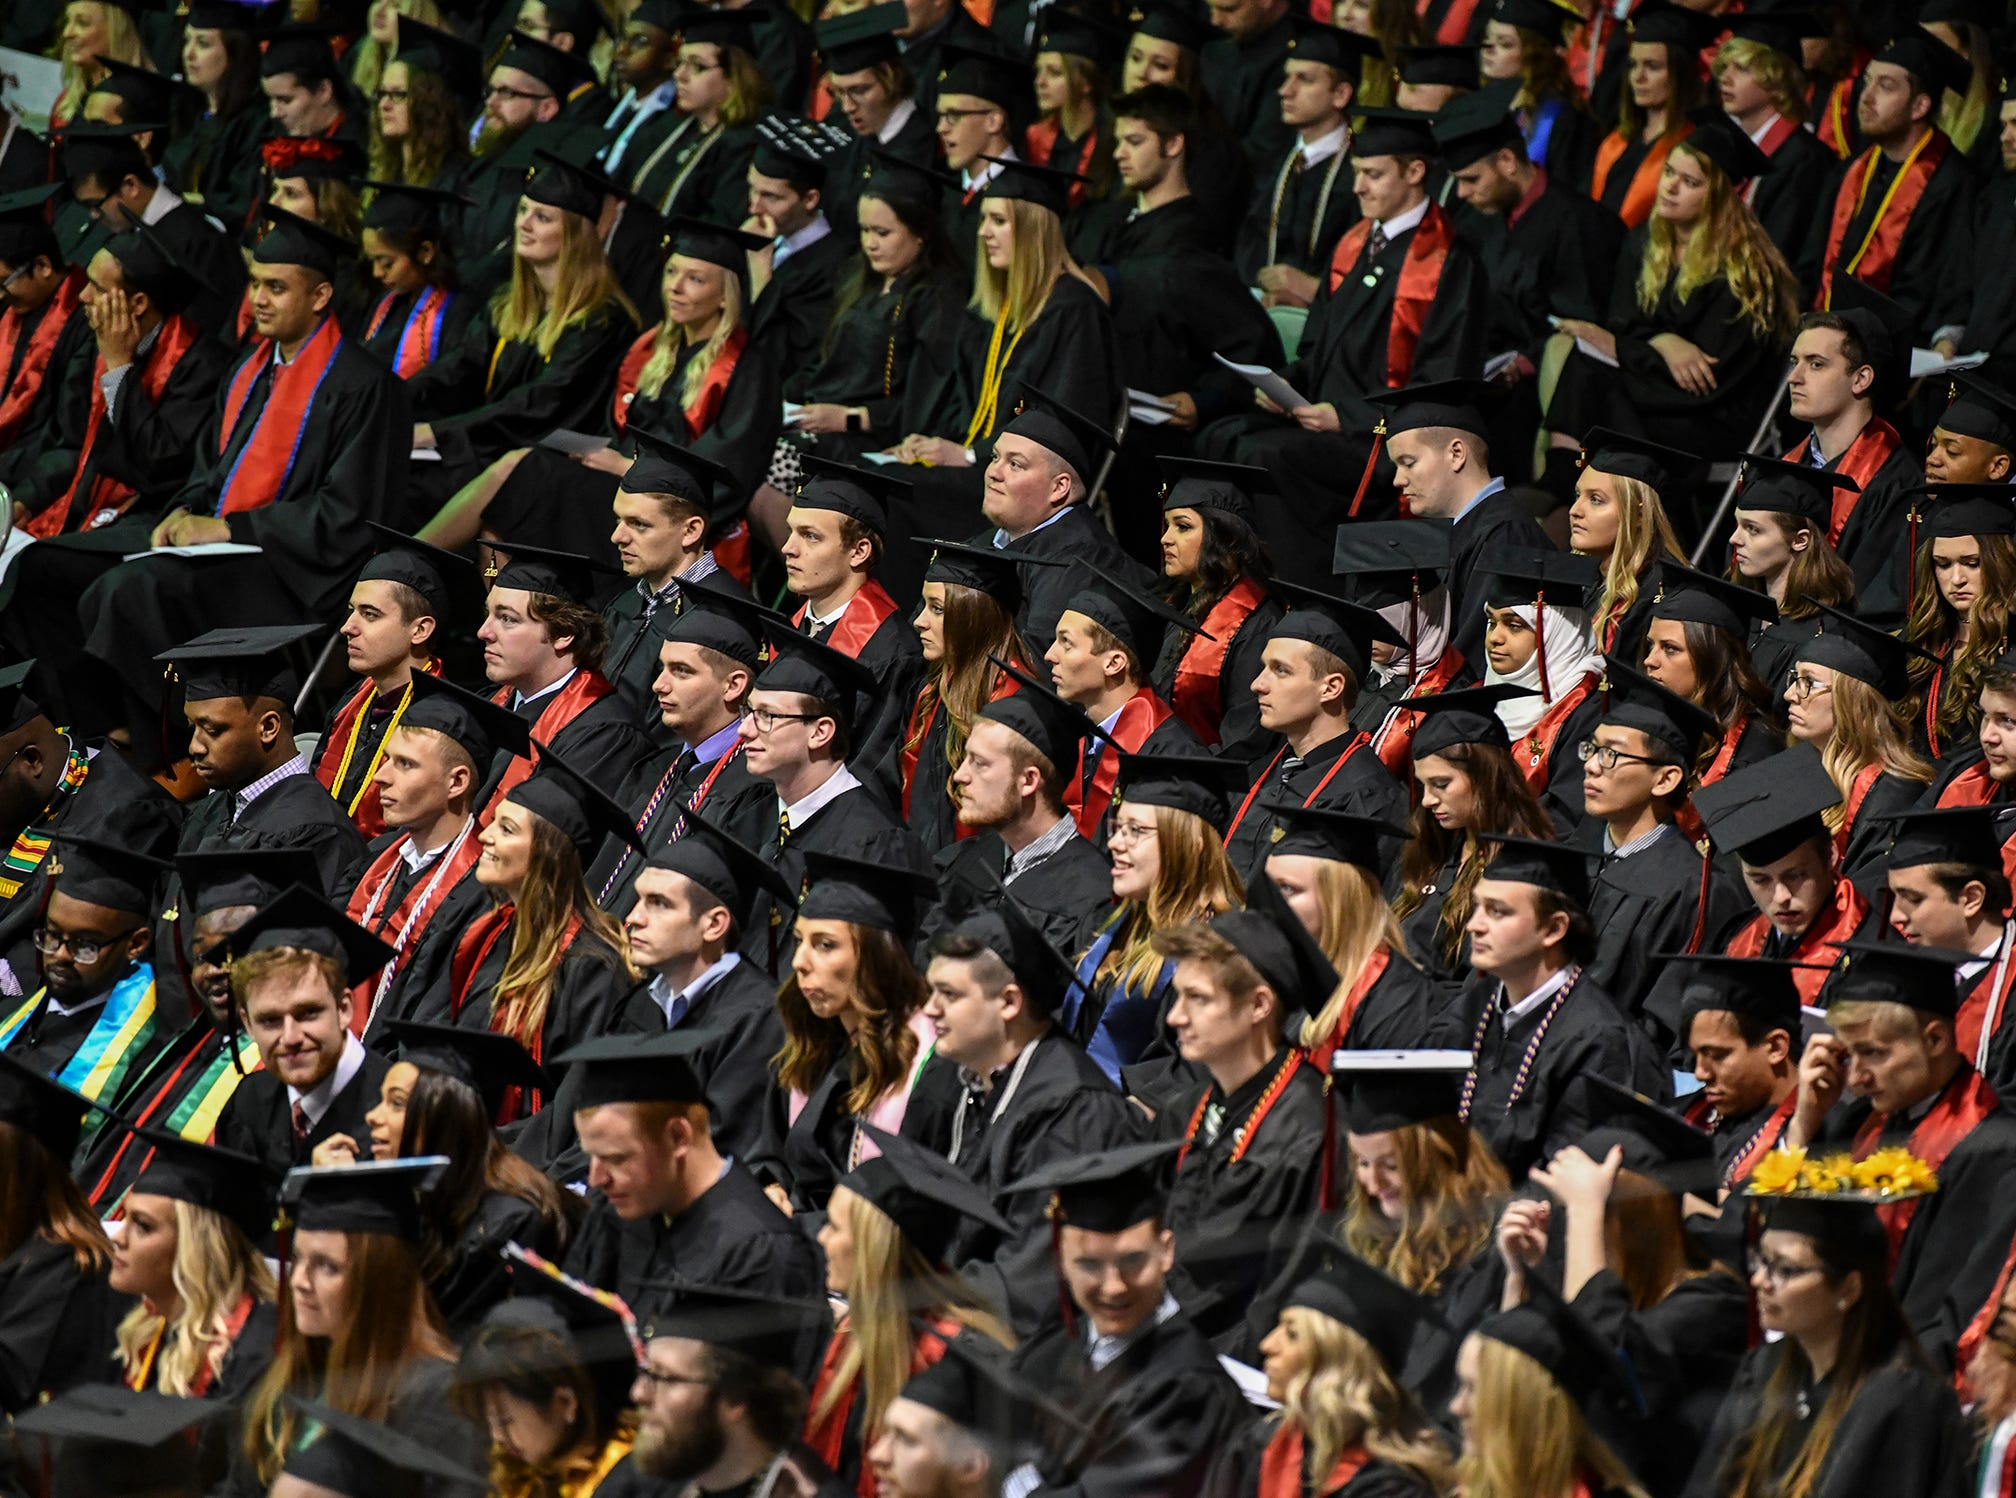 St. Cloud State University students wait to receive their degrees during the morning commencement ceremony Friday, May 10, in St. Cloud.